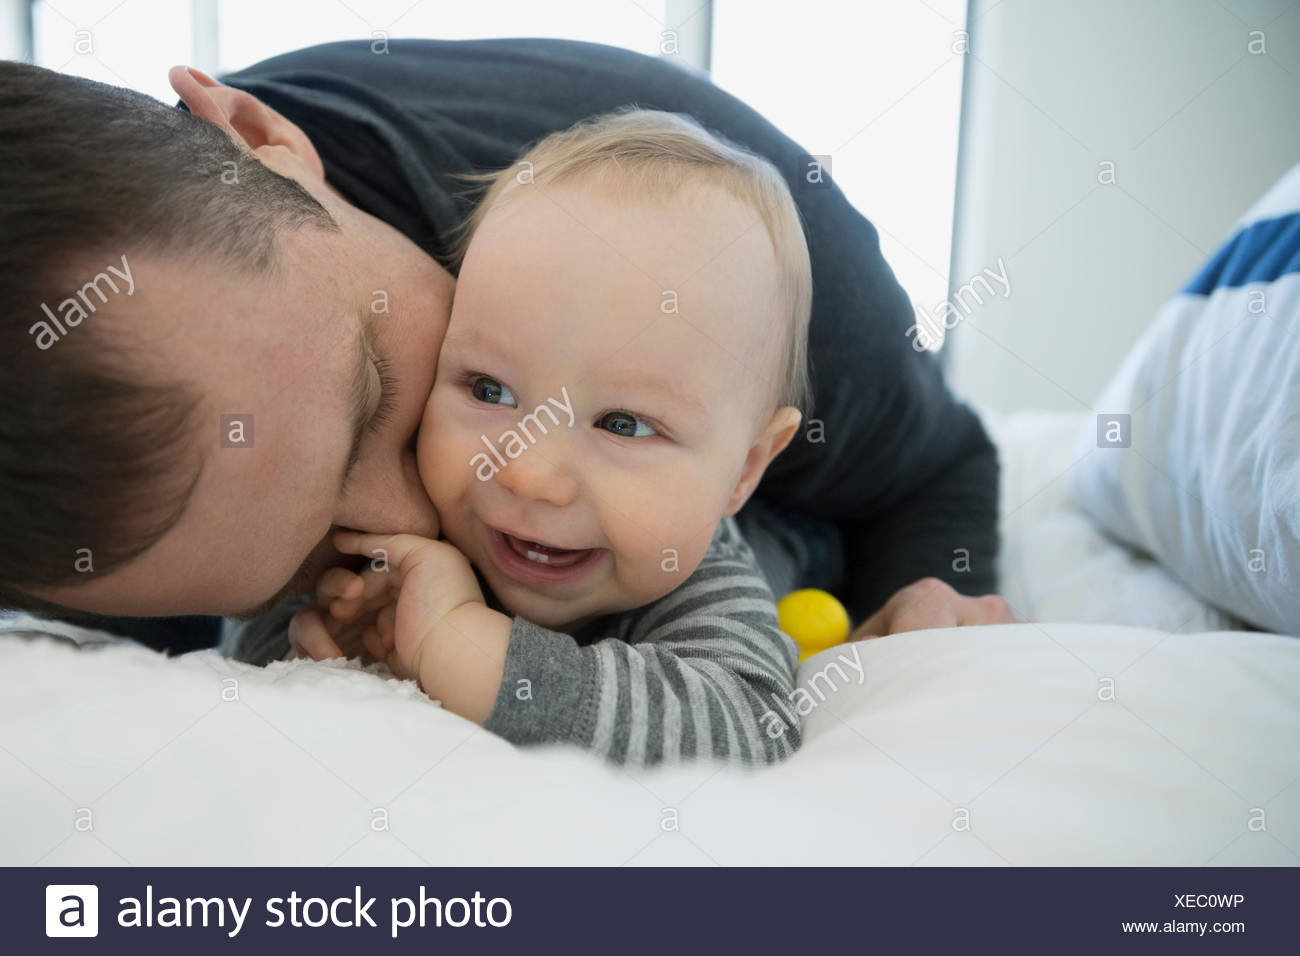 Father kissing baby boy smiling on bed Photo Stock